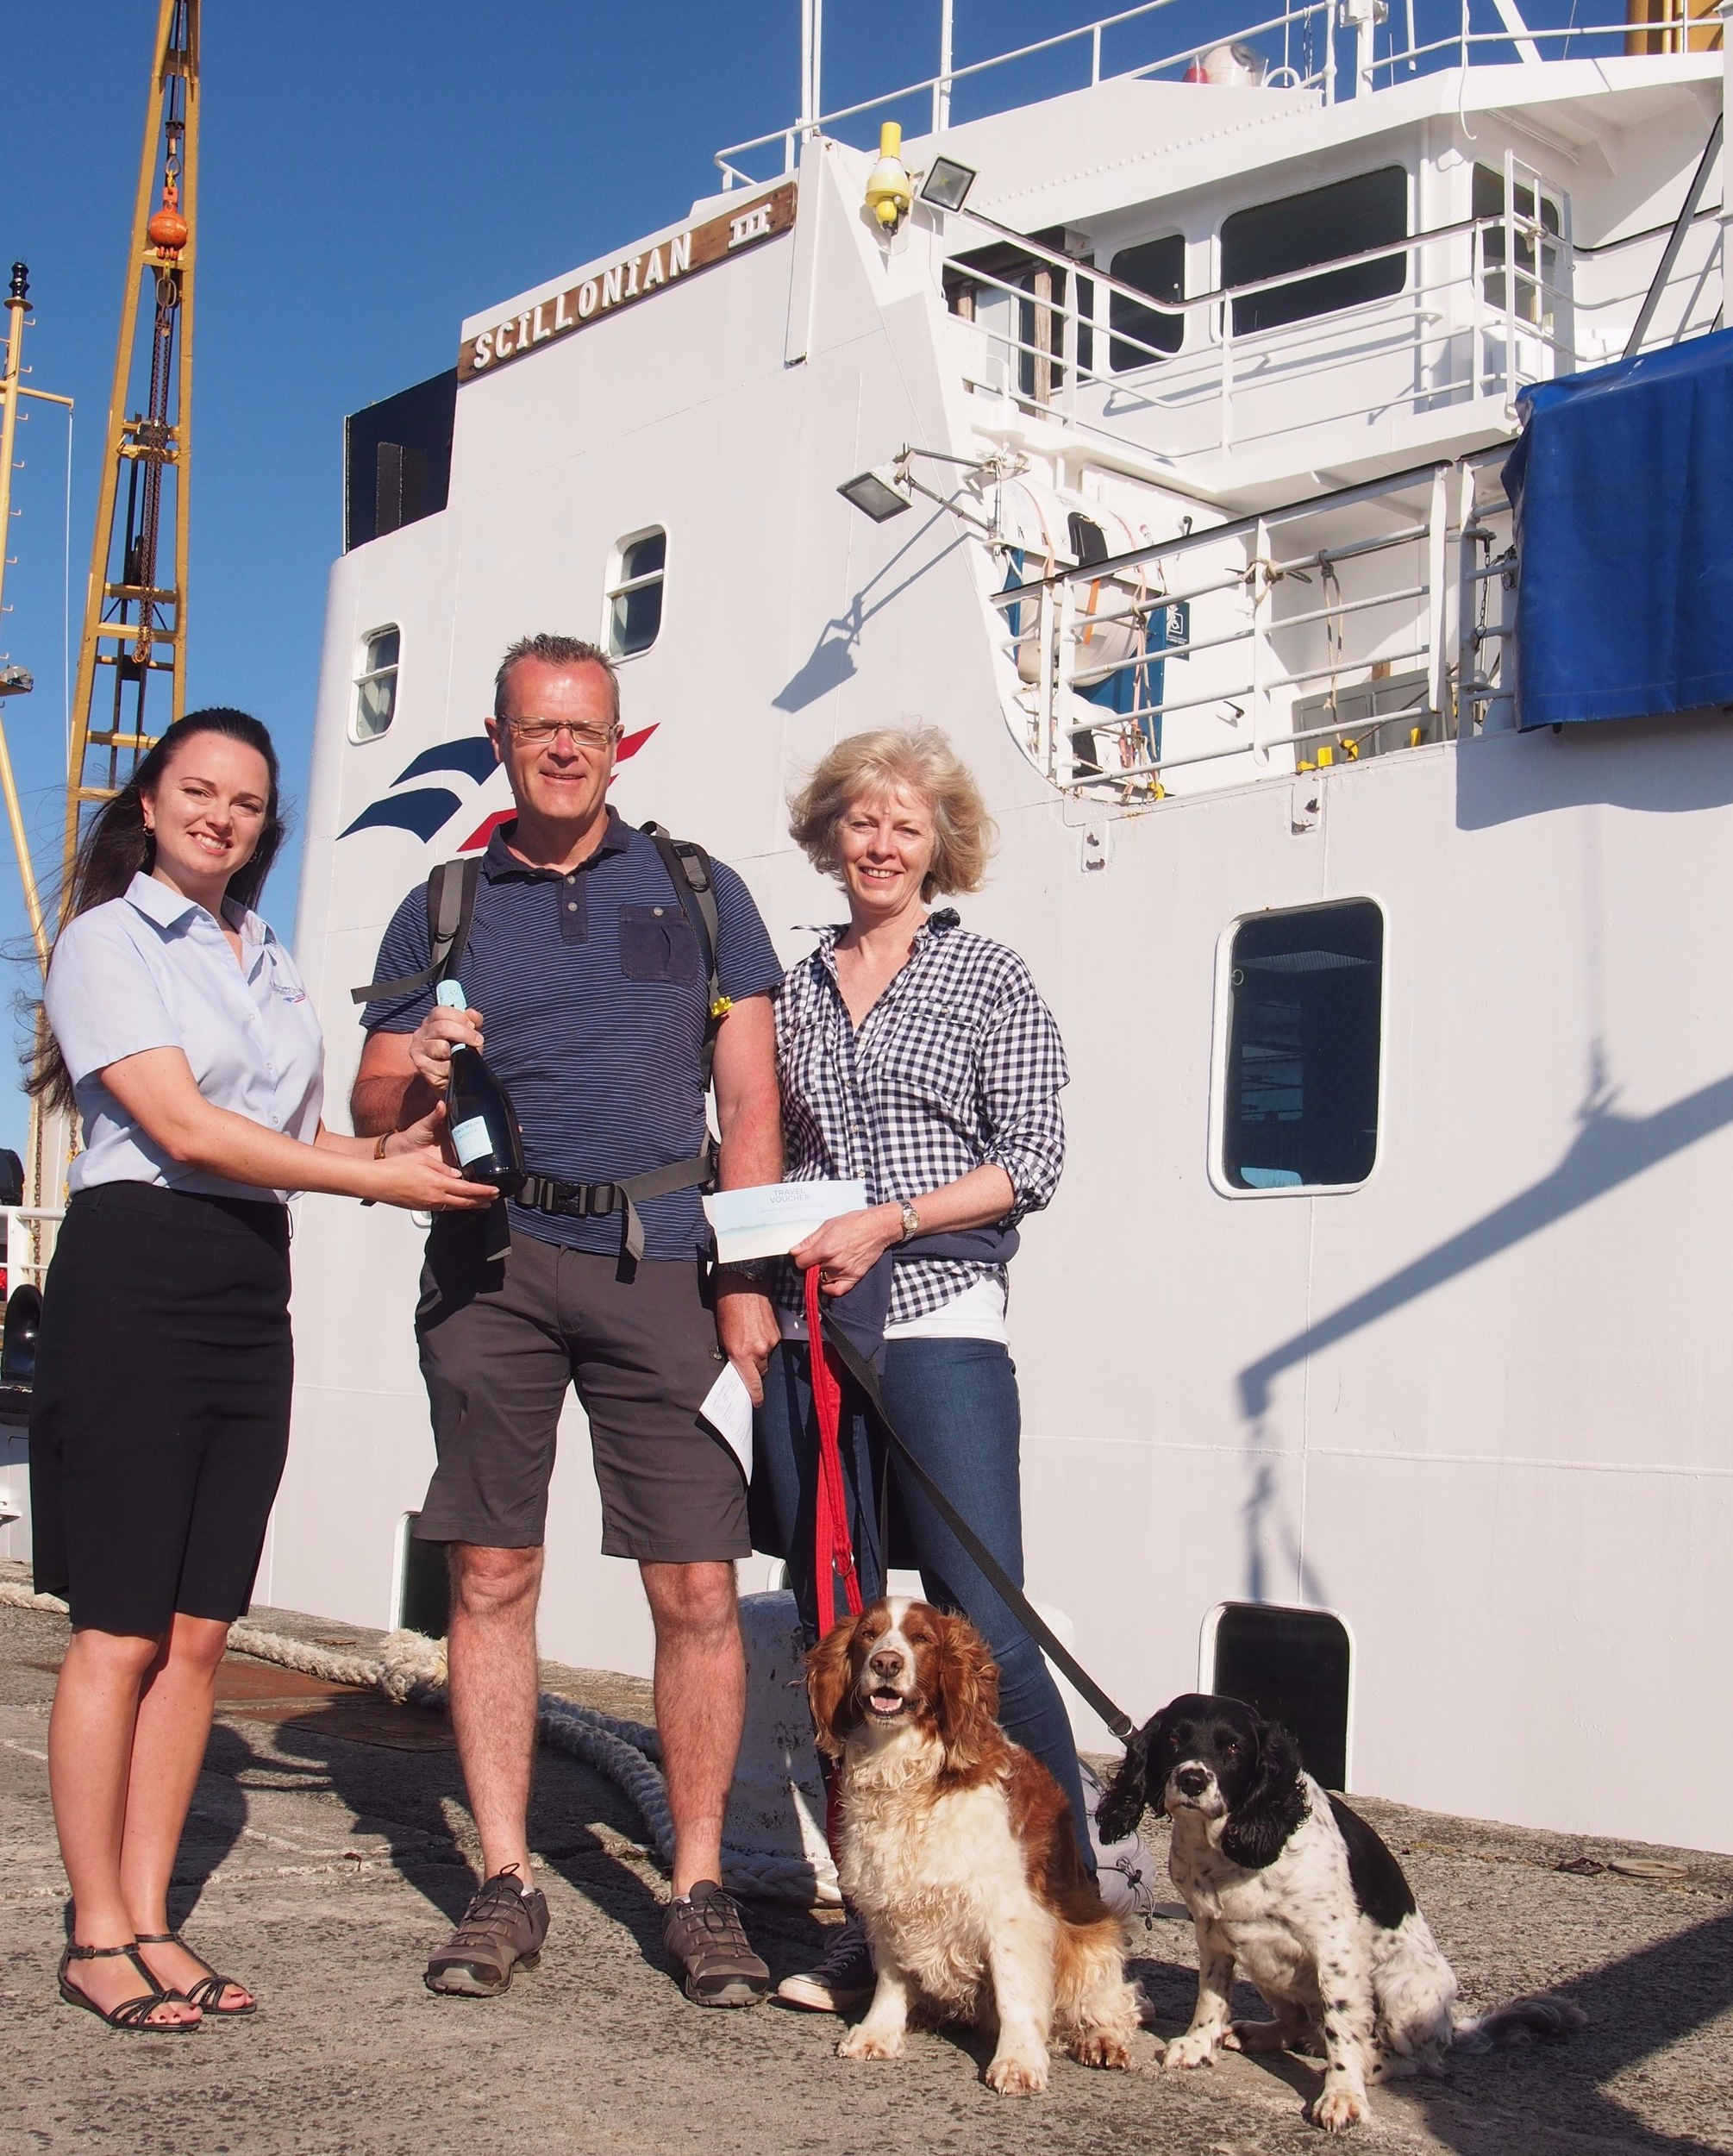 Jacky Shepley from Paignton boarded the ferry to visit the islands with her husband and two dogs and was greeted by the company's Deputy Travel Centre Manager Tammy Matthews, who presented her with a celebratory bottle of fizz and complimentary travel tickets for 2020.